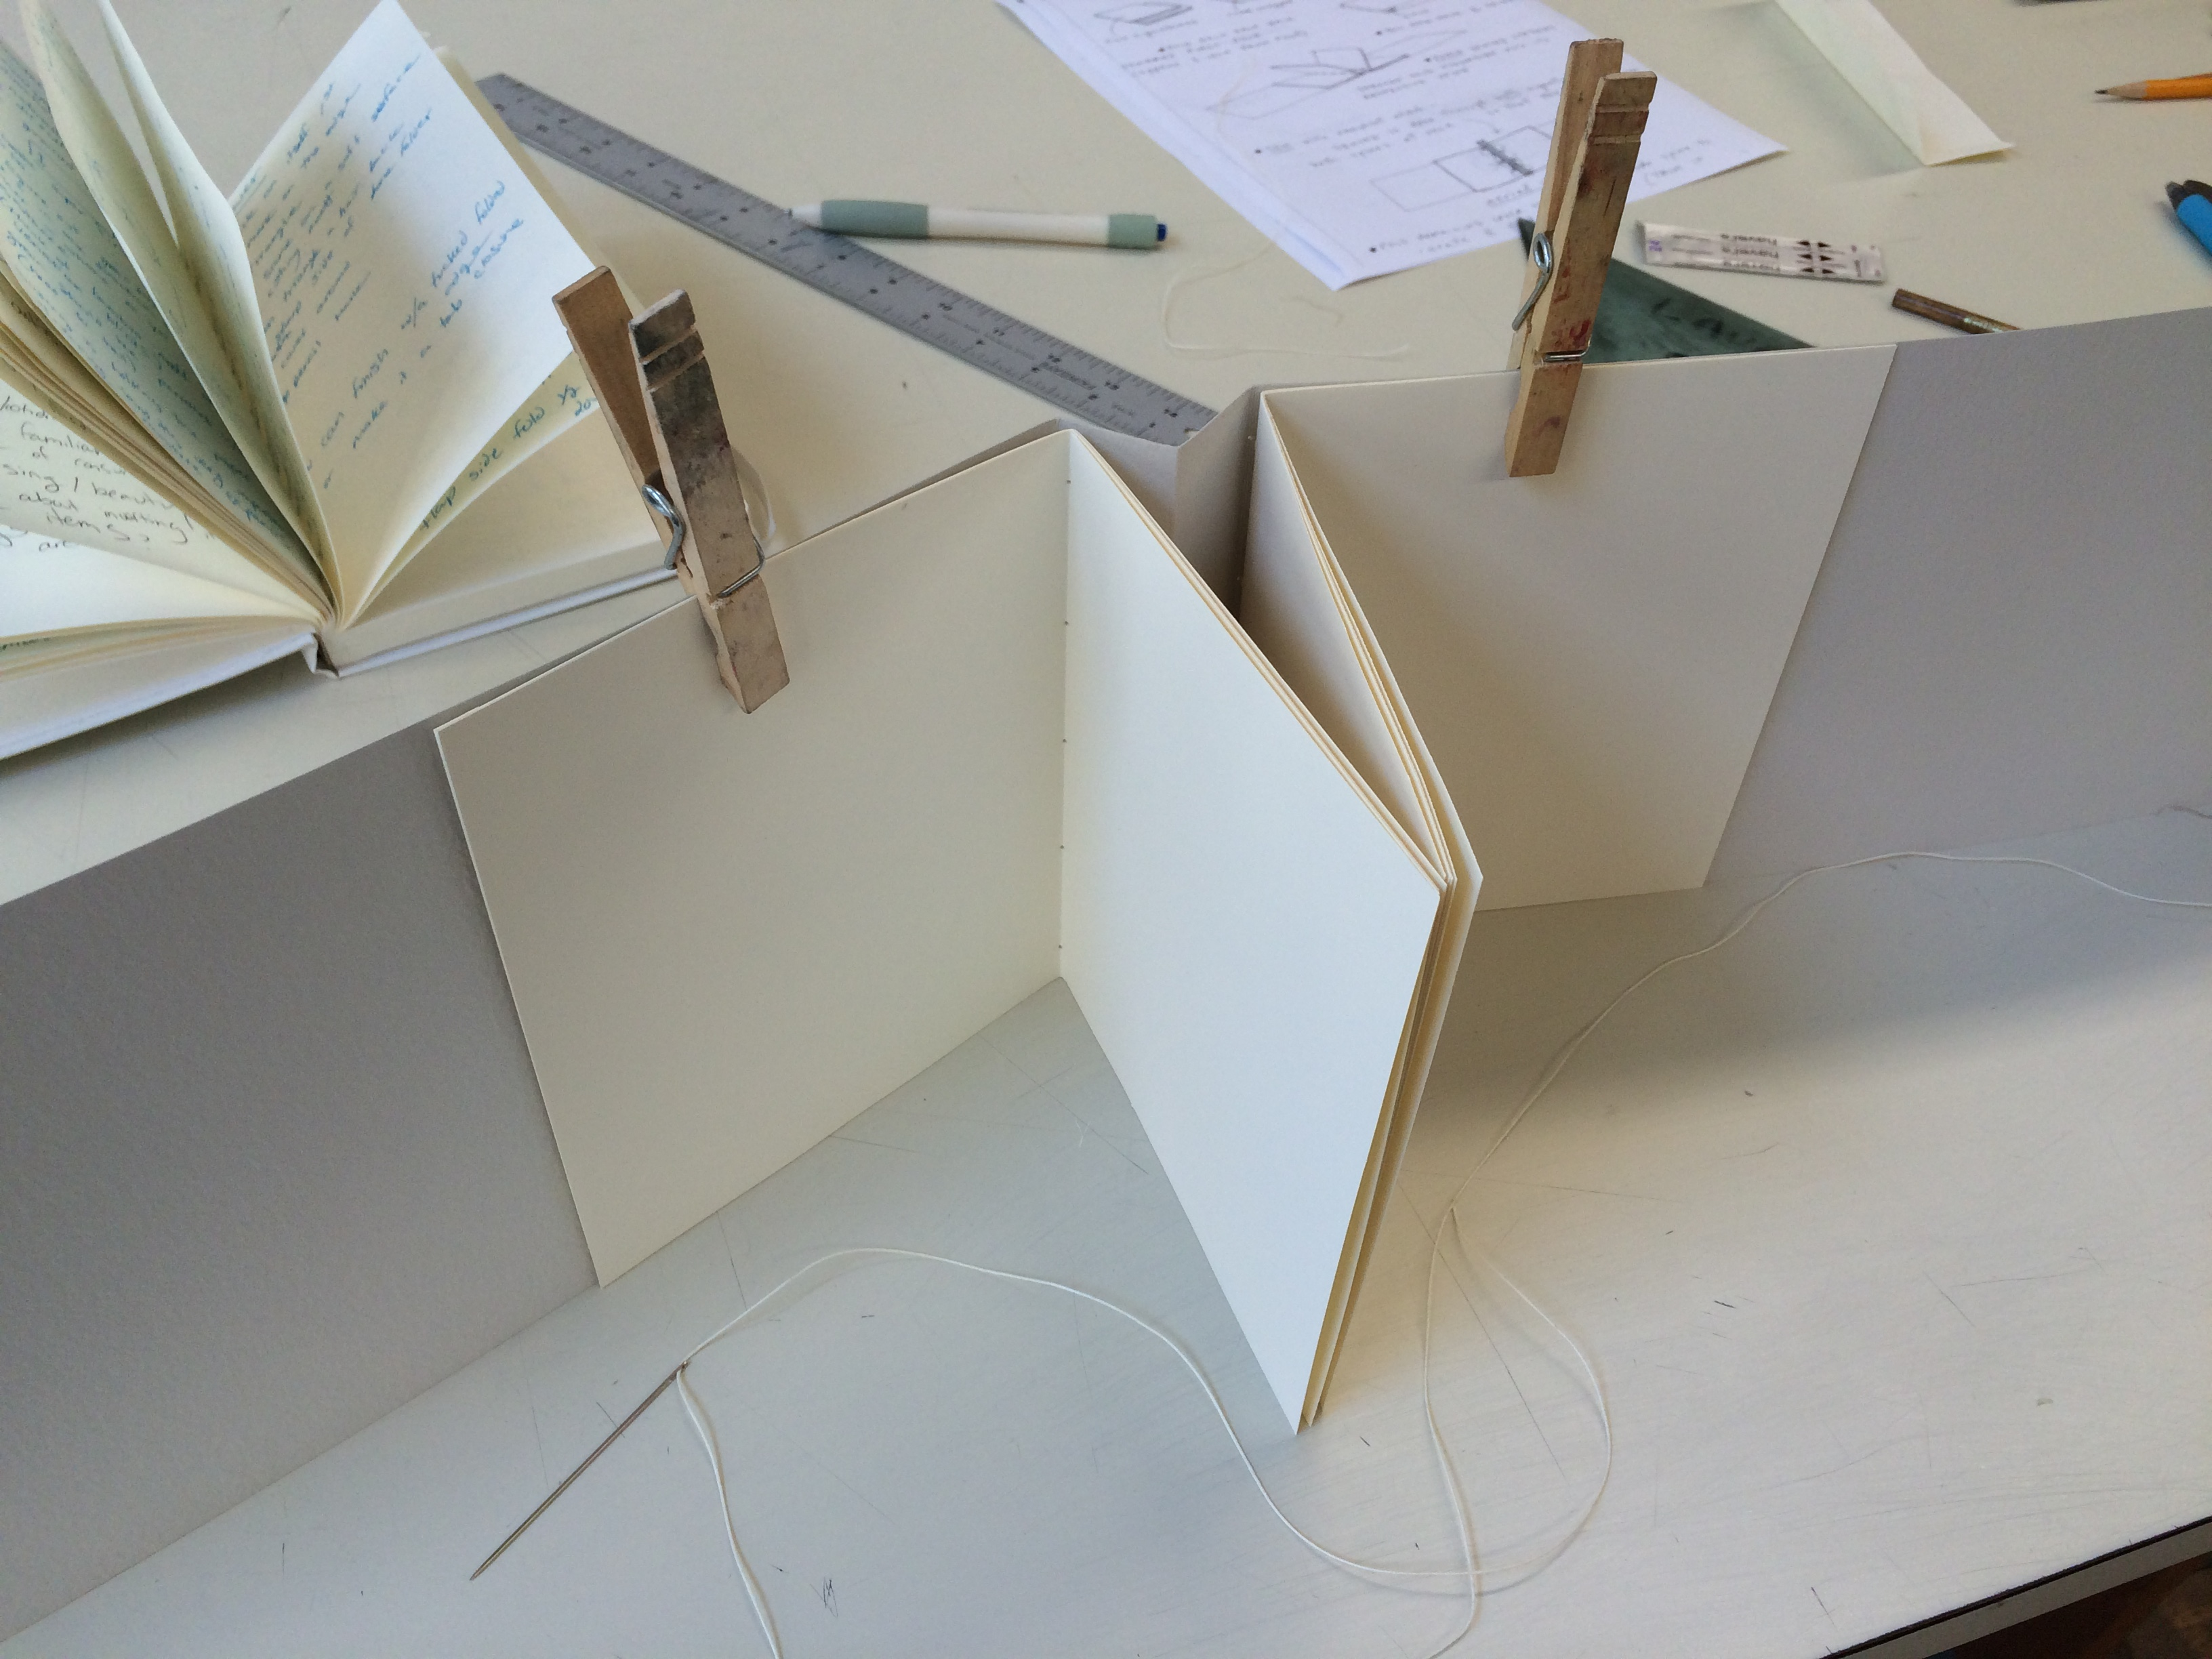 Artists' Books Workshop